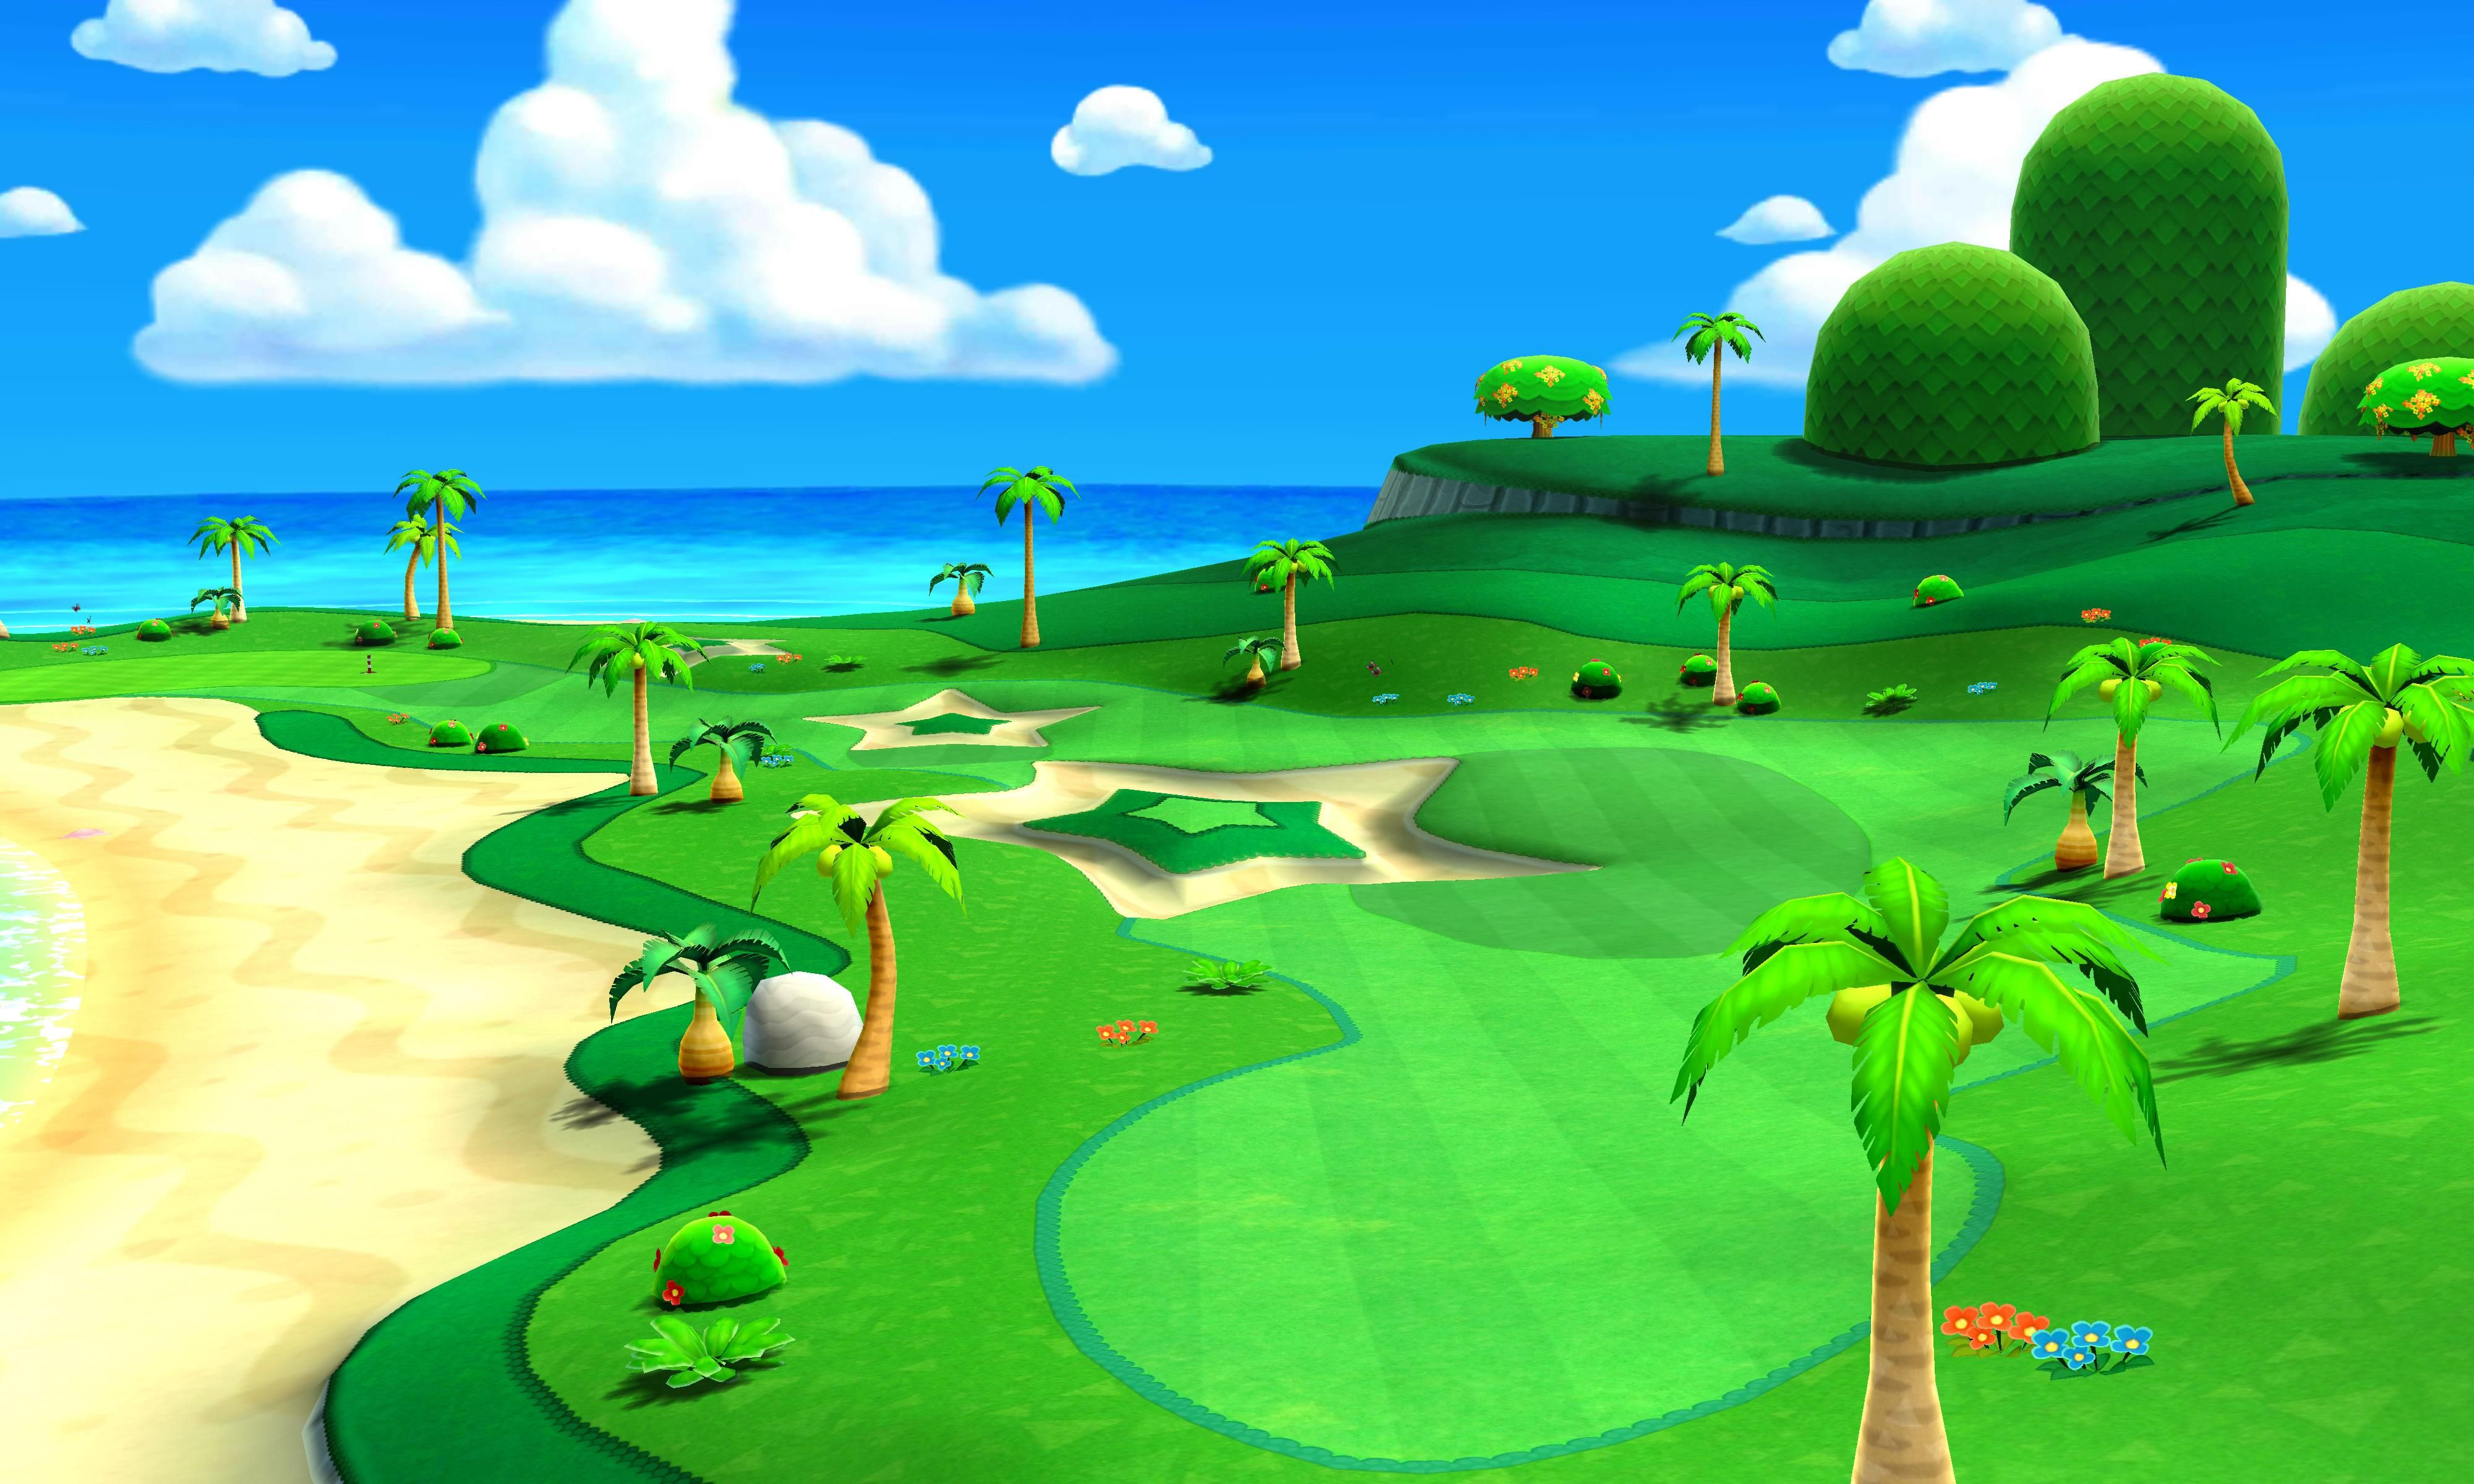 Golf Course art 6 from the official artwork set for #MarioGolf World Tour on the #Nintendo3DS. More info on #Mario 3DS games @ http://www.superluigibros.com/3ds-games